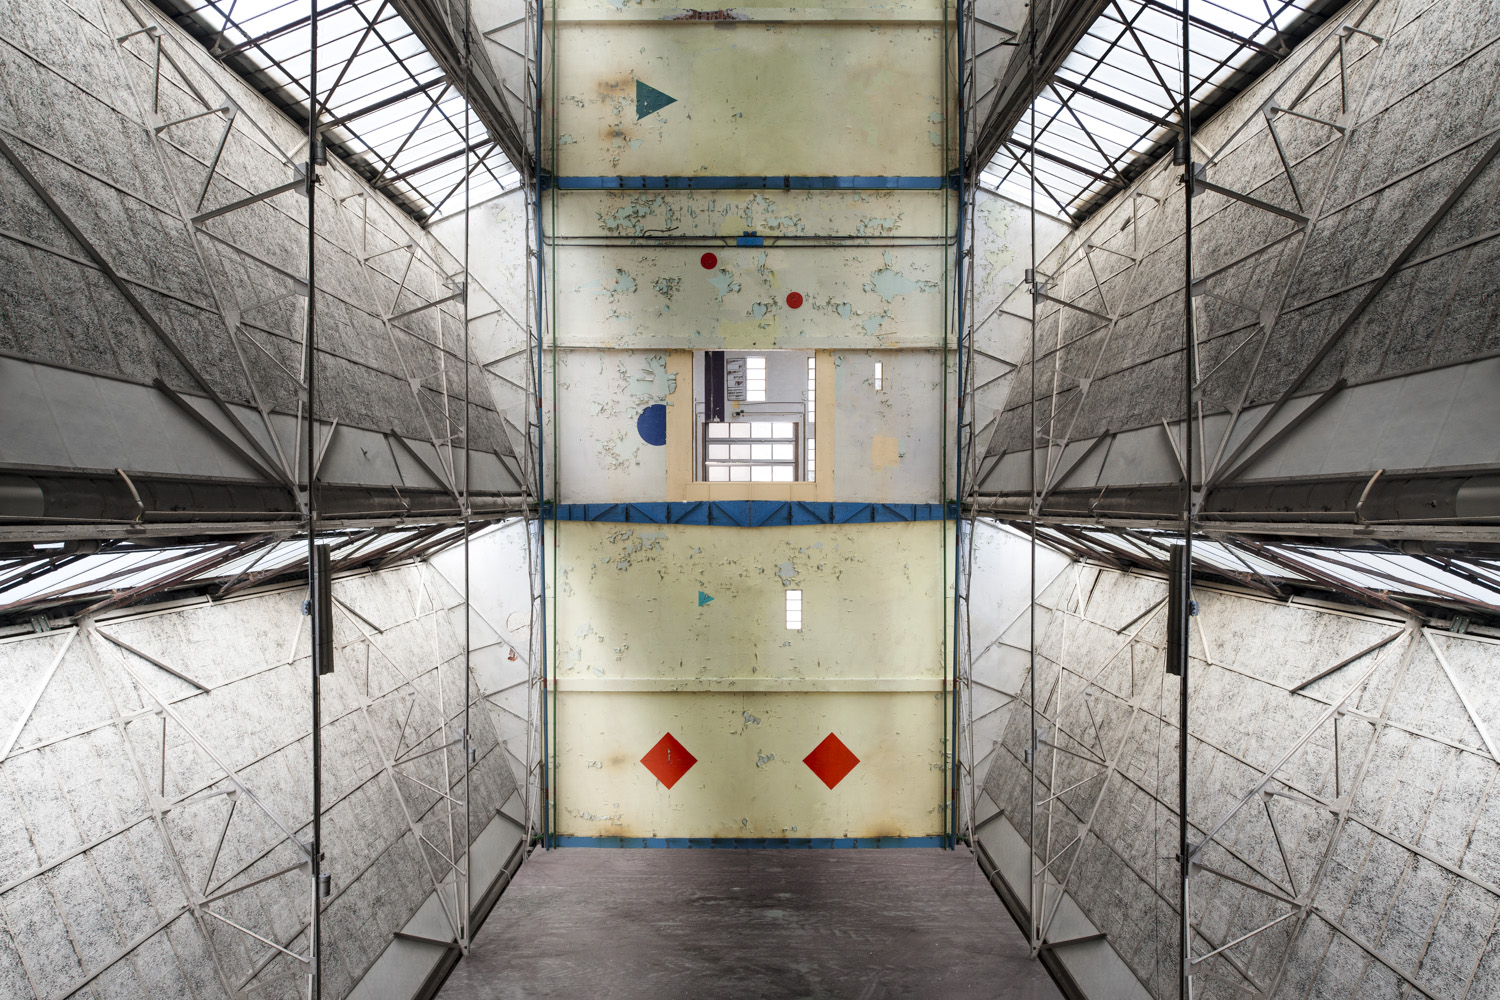 hazard rhombus - IMAGINARY SPACES - cesar azcarate photography, galleries, imaginary spaces